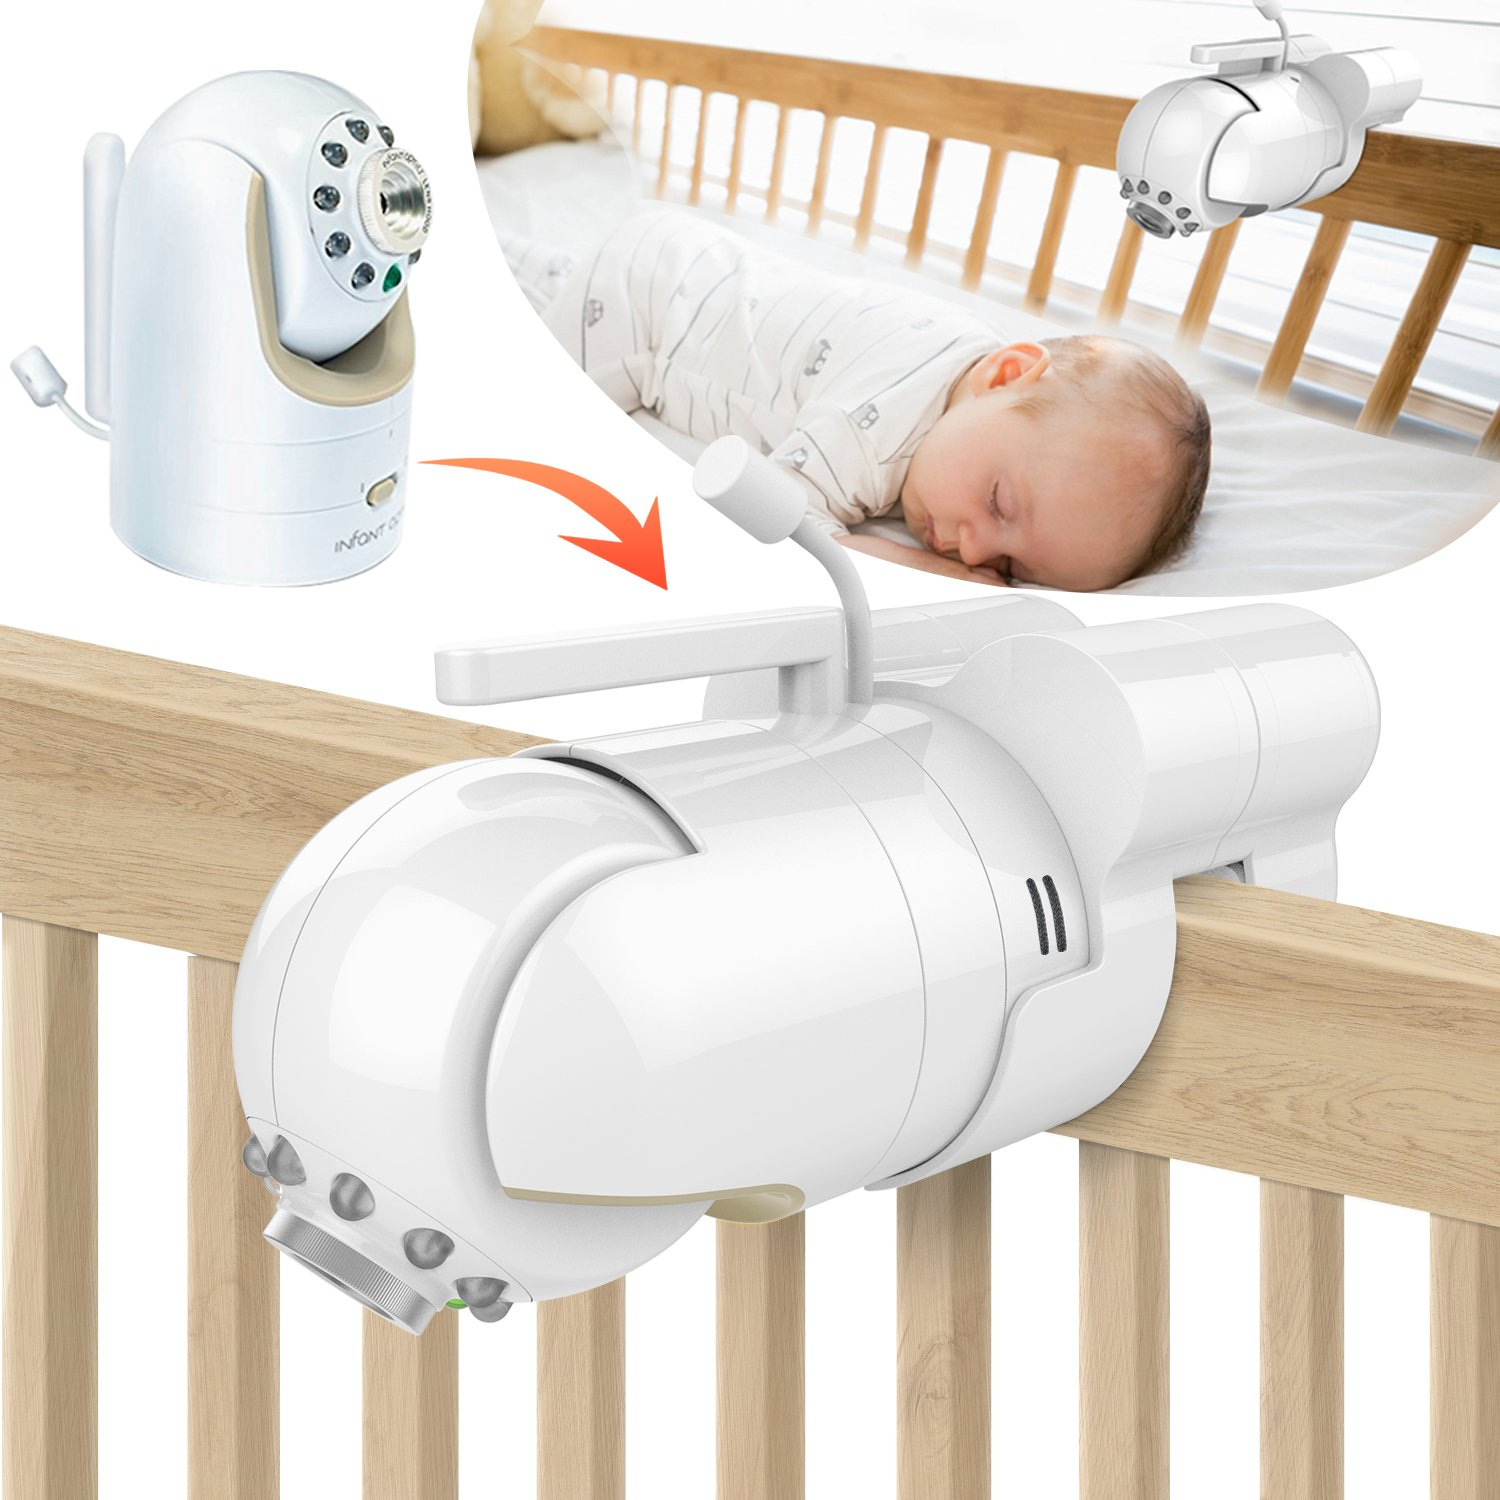 Baby Monitor Mount Bracket for Infant Optics DXR-8 Baby Monitor, Featch Universal Baby Cradle Mount Holder for Infant Optics DXR-8(Infant Optics DXR-8 Not Included.) by Featch